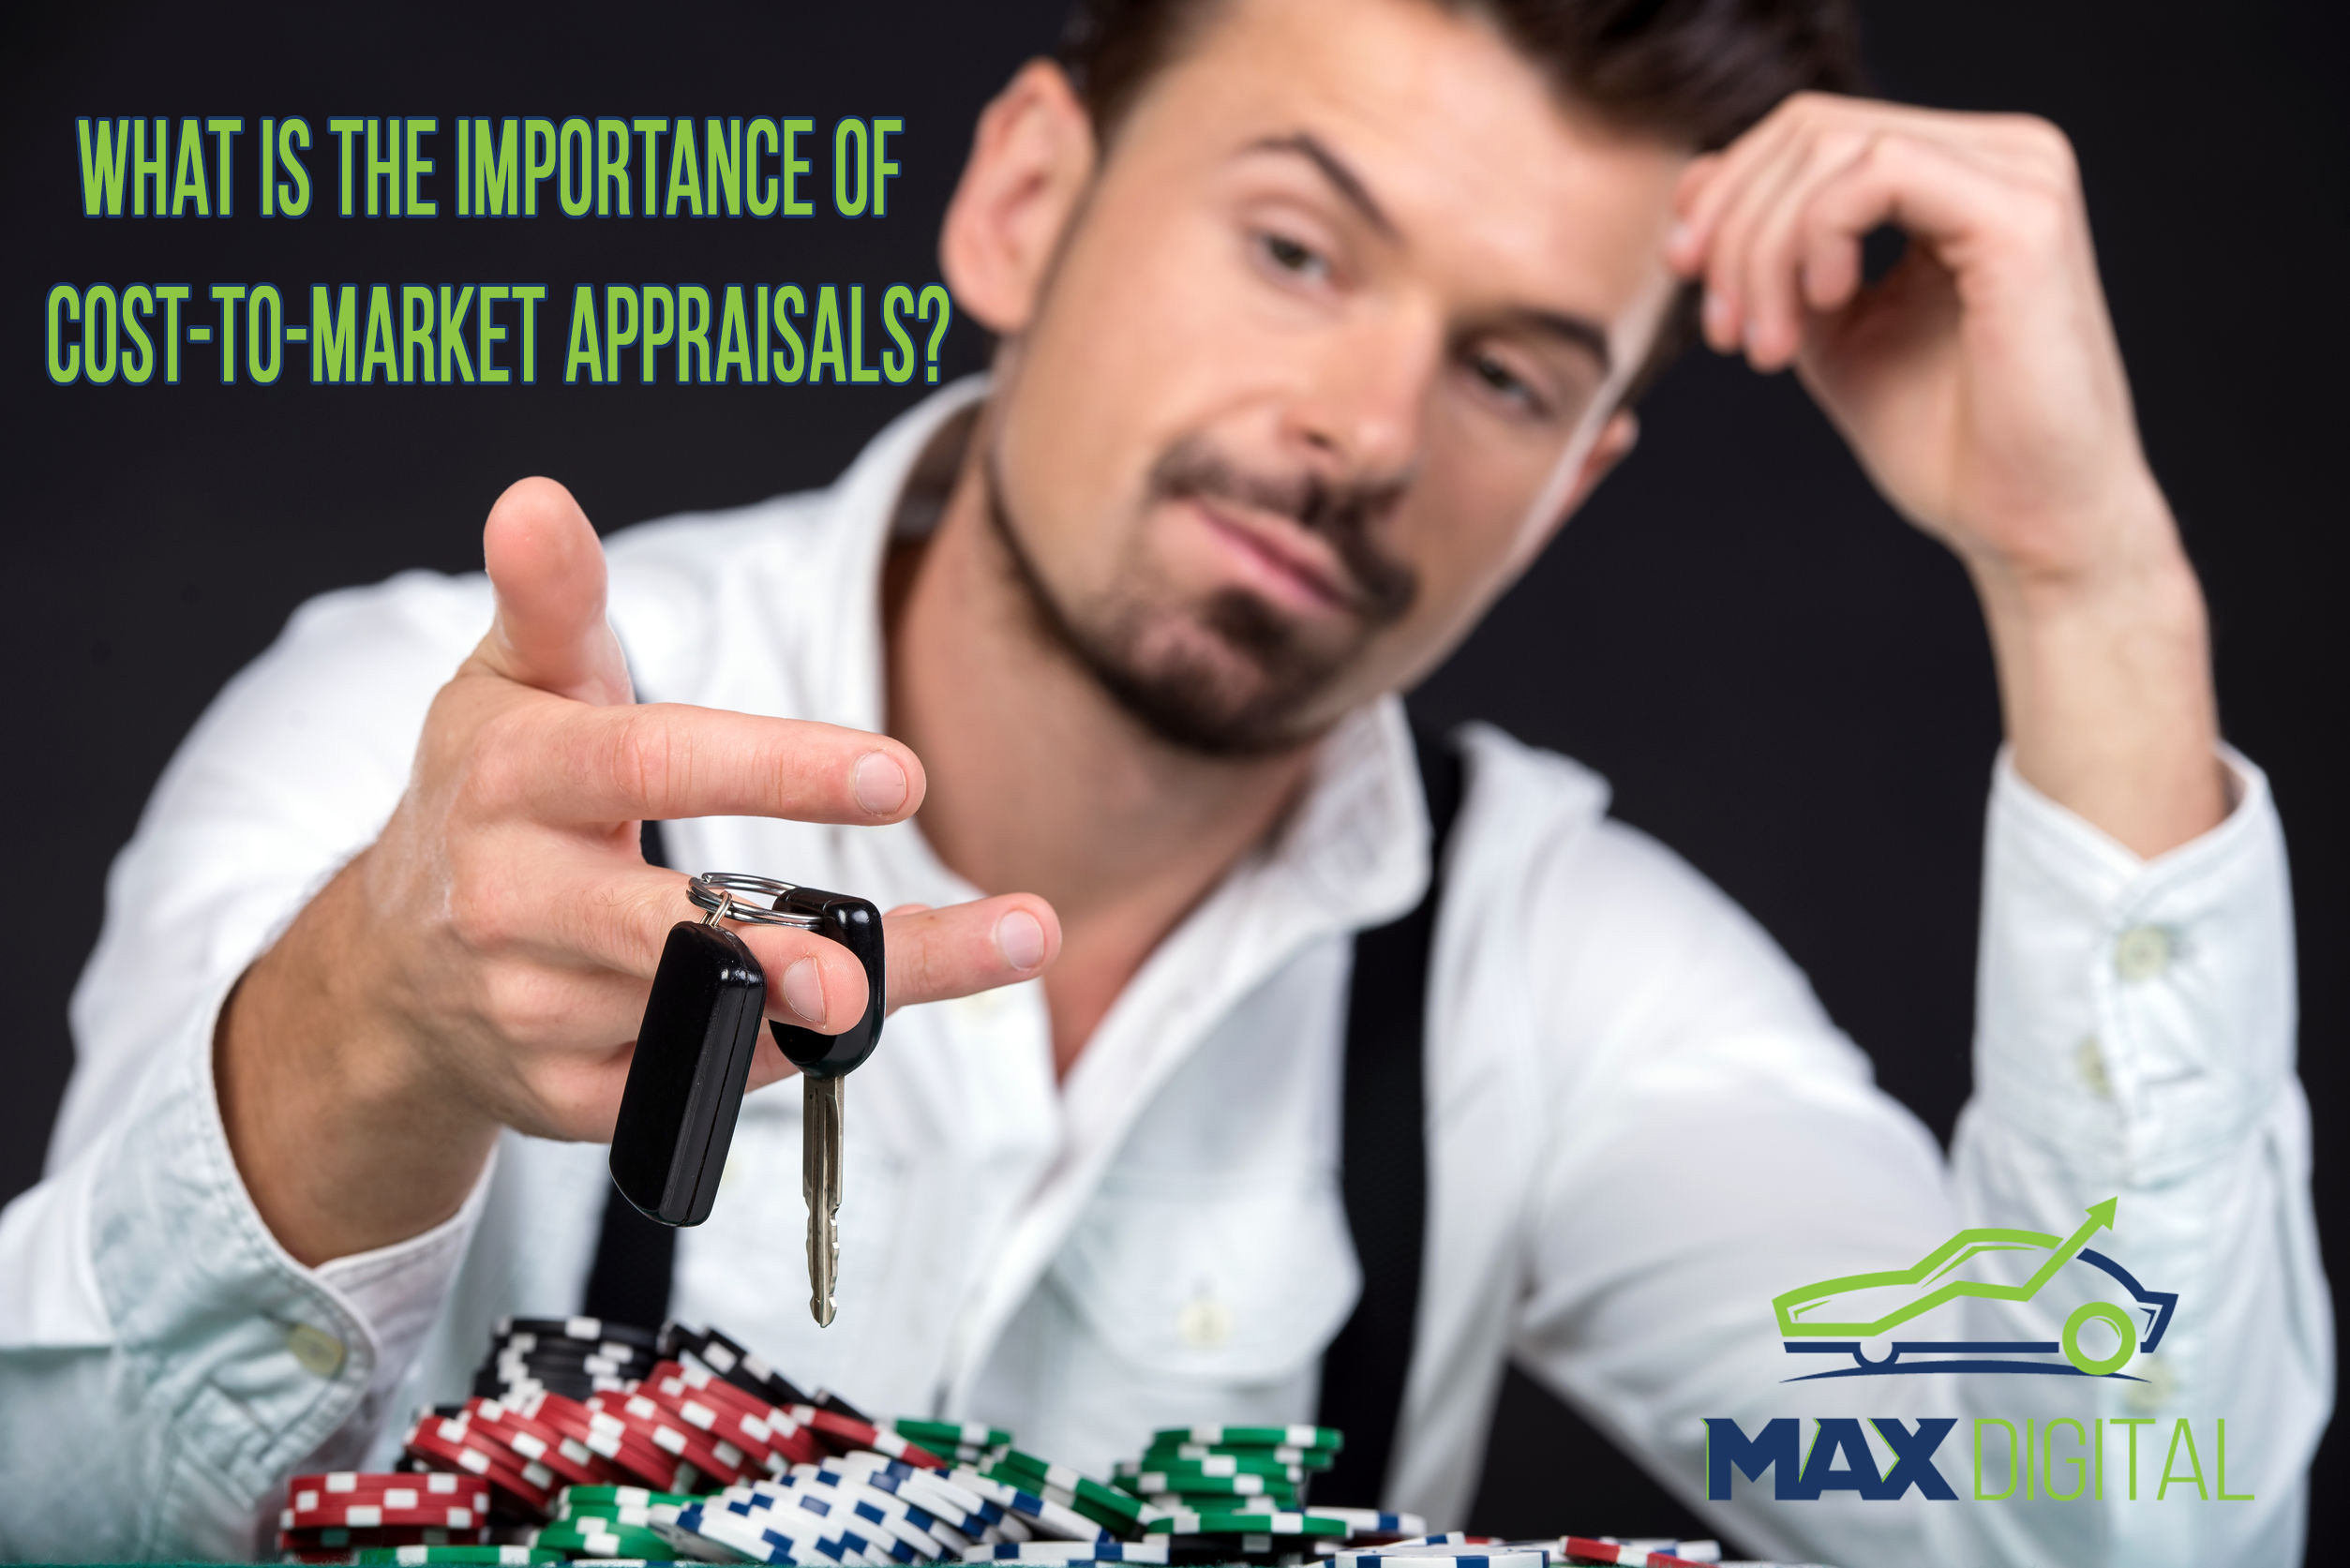 What is the Importance of Cost-to-Market Appraisals?